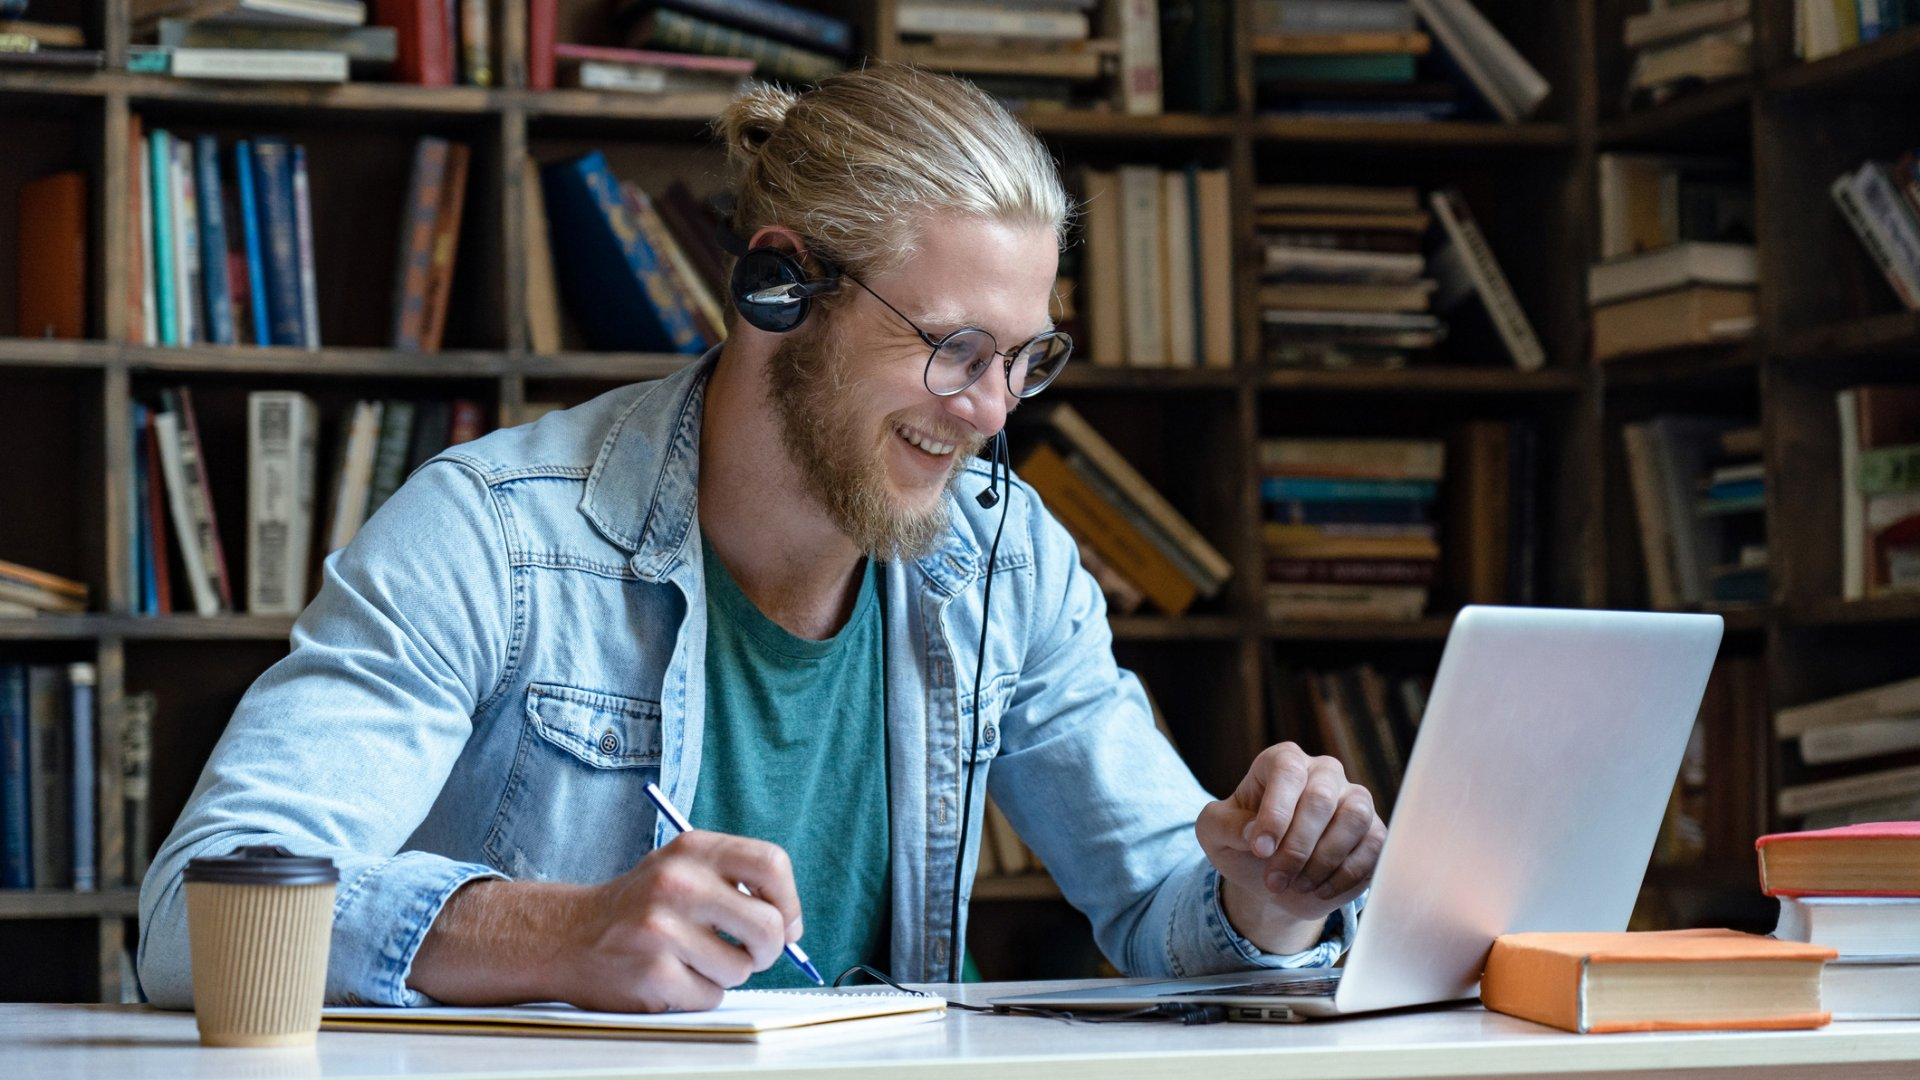 Language learning via live television is the latest e-learning trend to take hold.